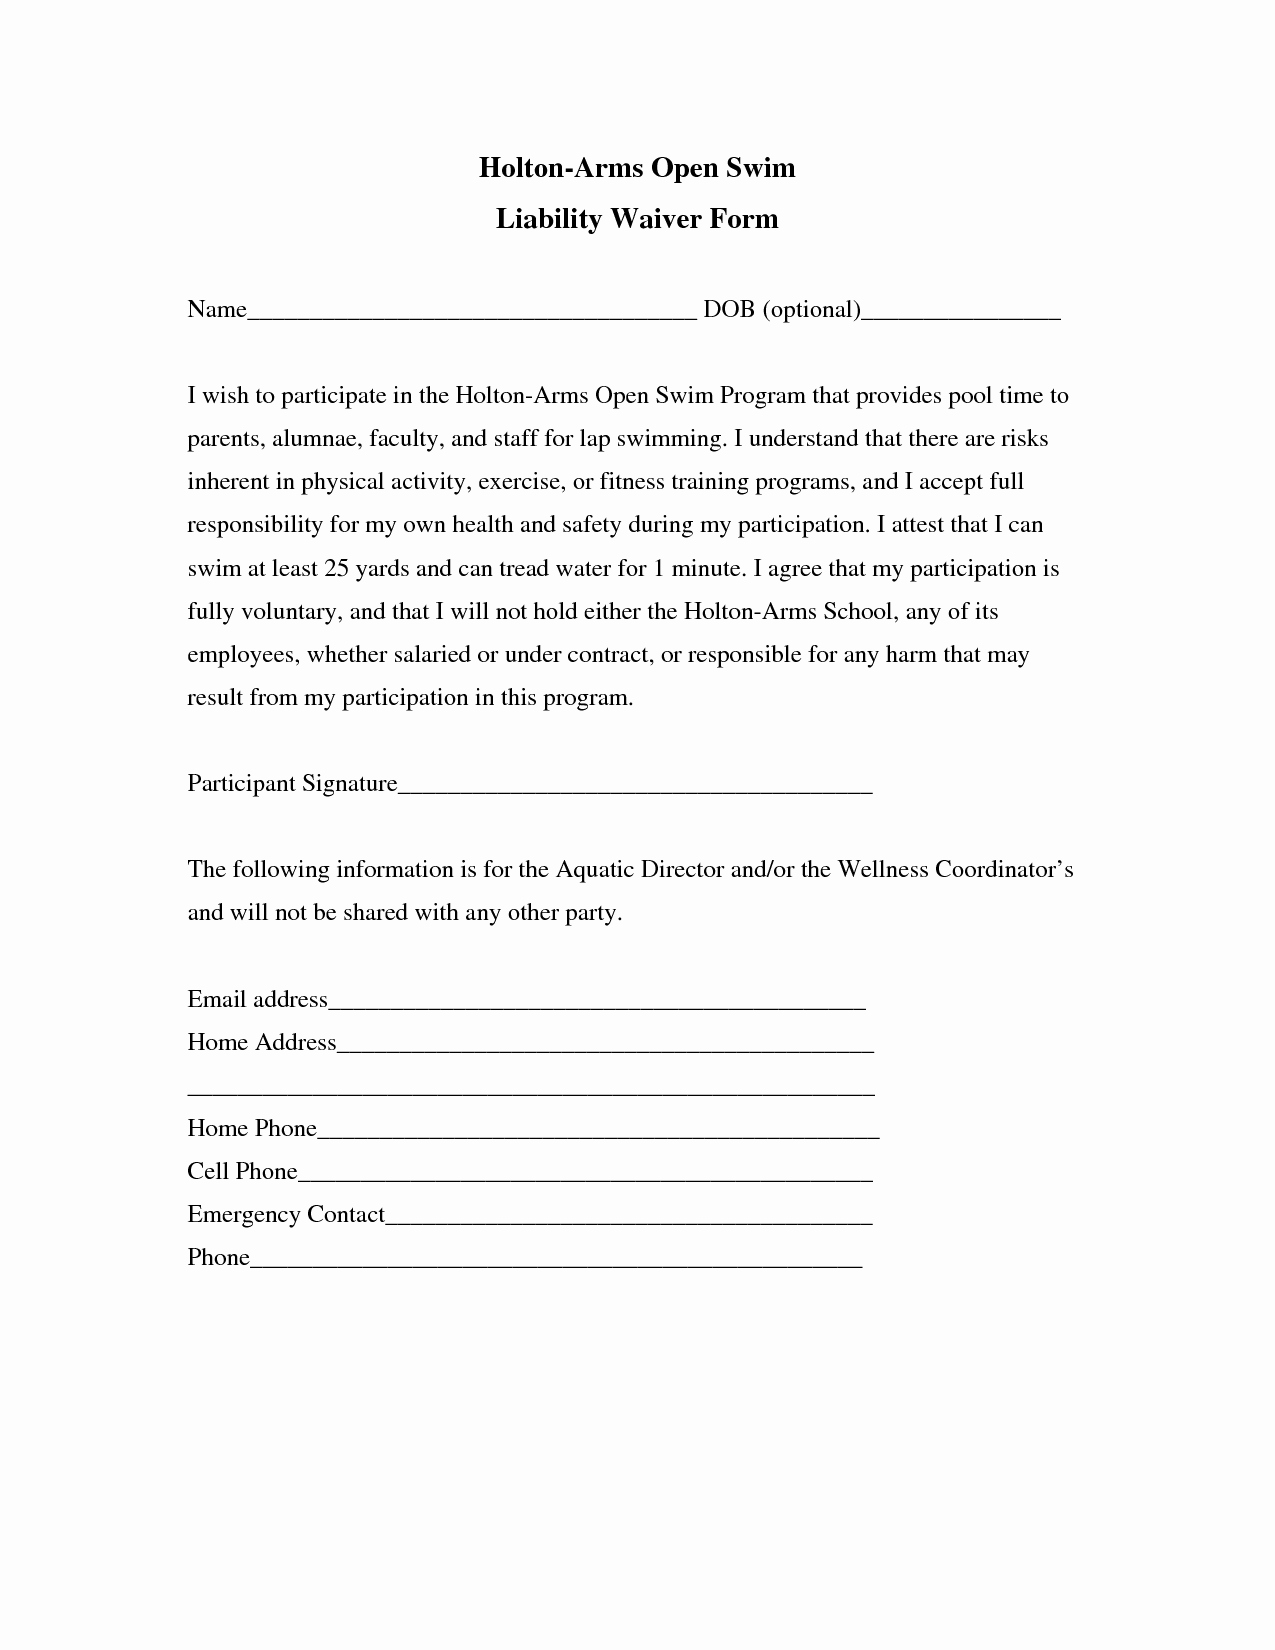 Video Release forms Template Fresh Liability Release form Template Free Printable Documents